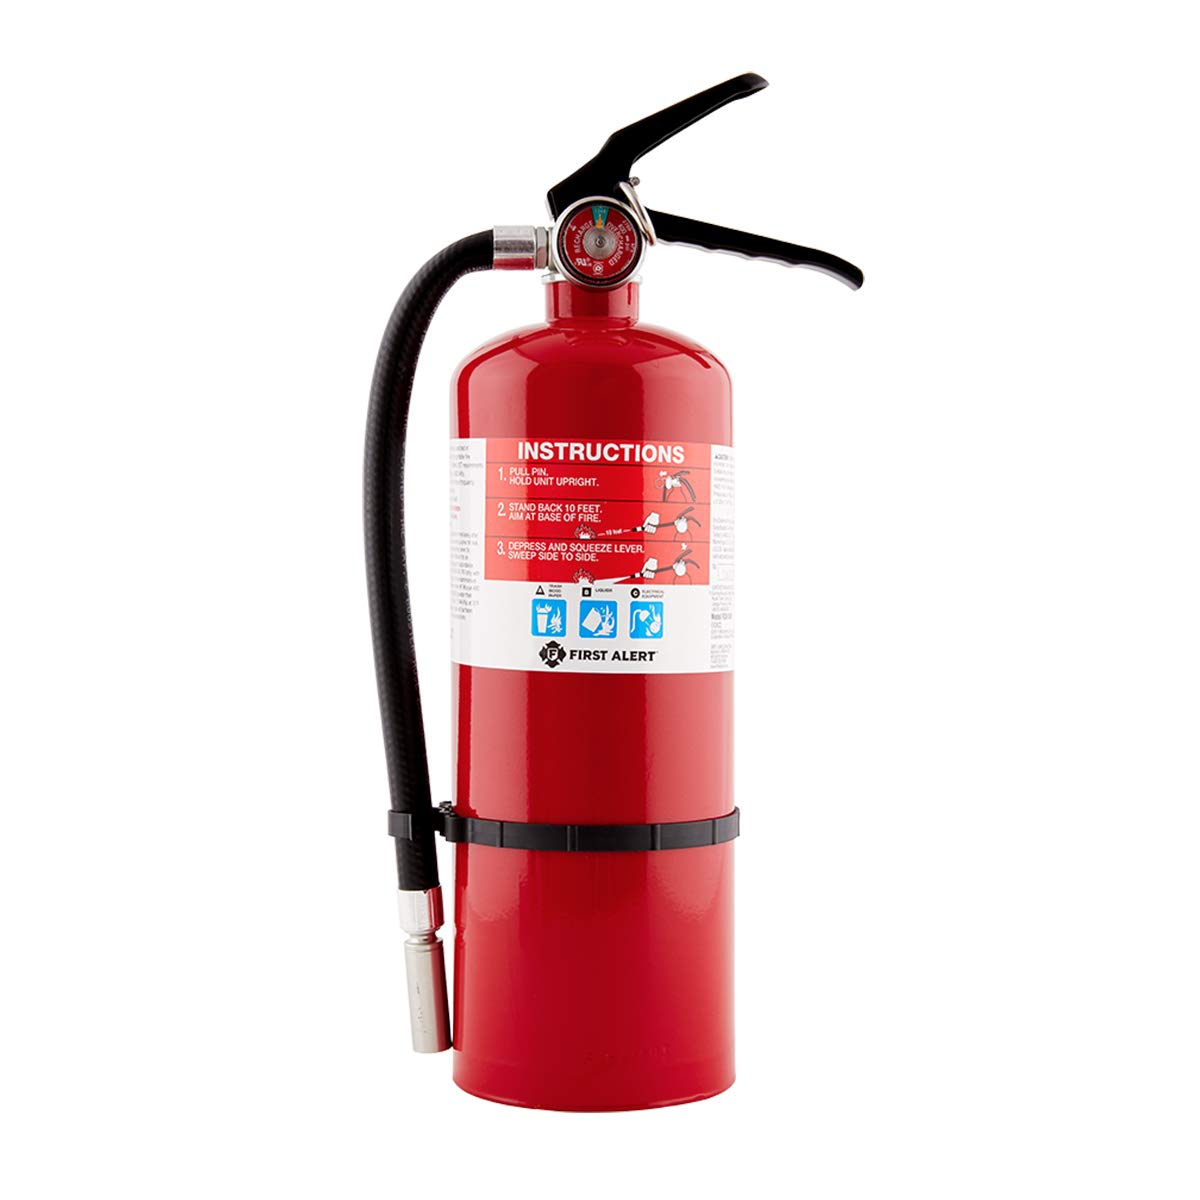 First Alert Fire Extinguisher Large Home Fire Extinguisher, Red, FE2A10GR